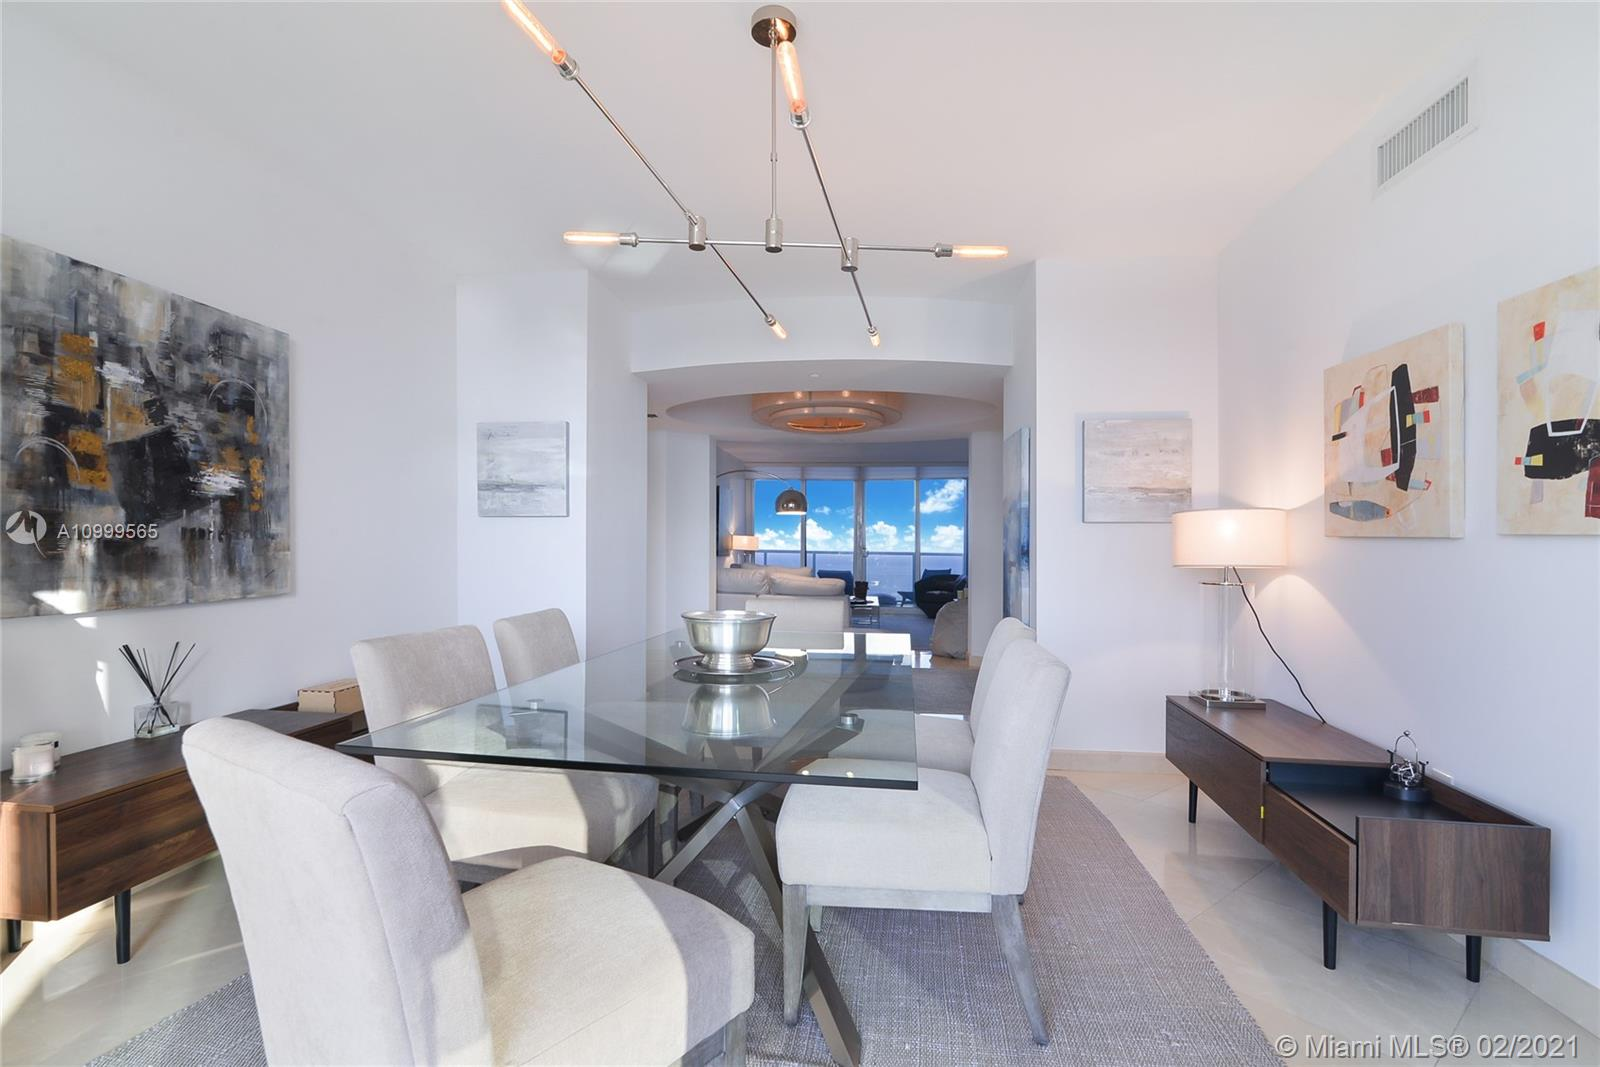 Photo of 19111 Collins Ave #3003, Sunny Isles Beach, Florida, 33160 -